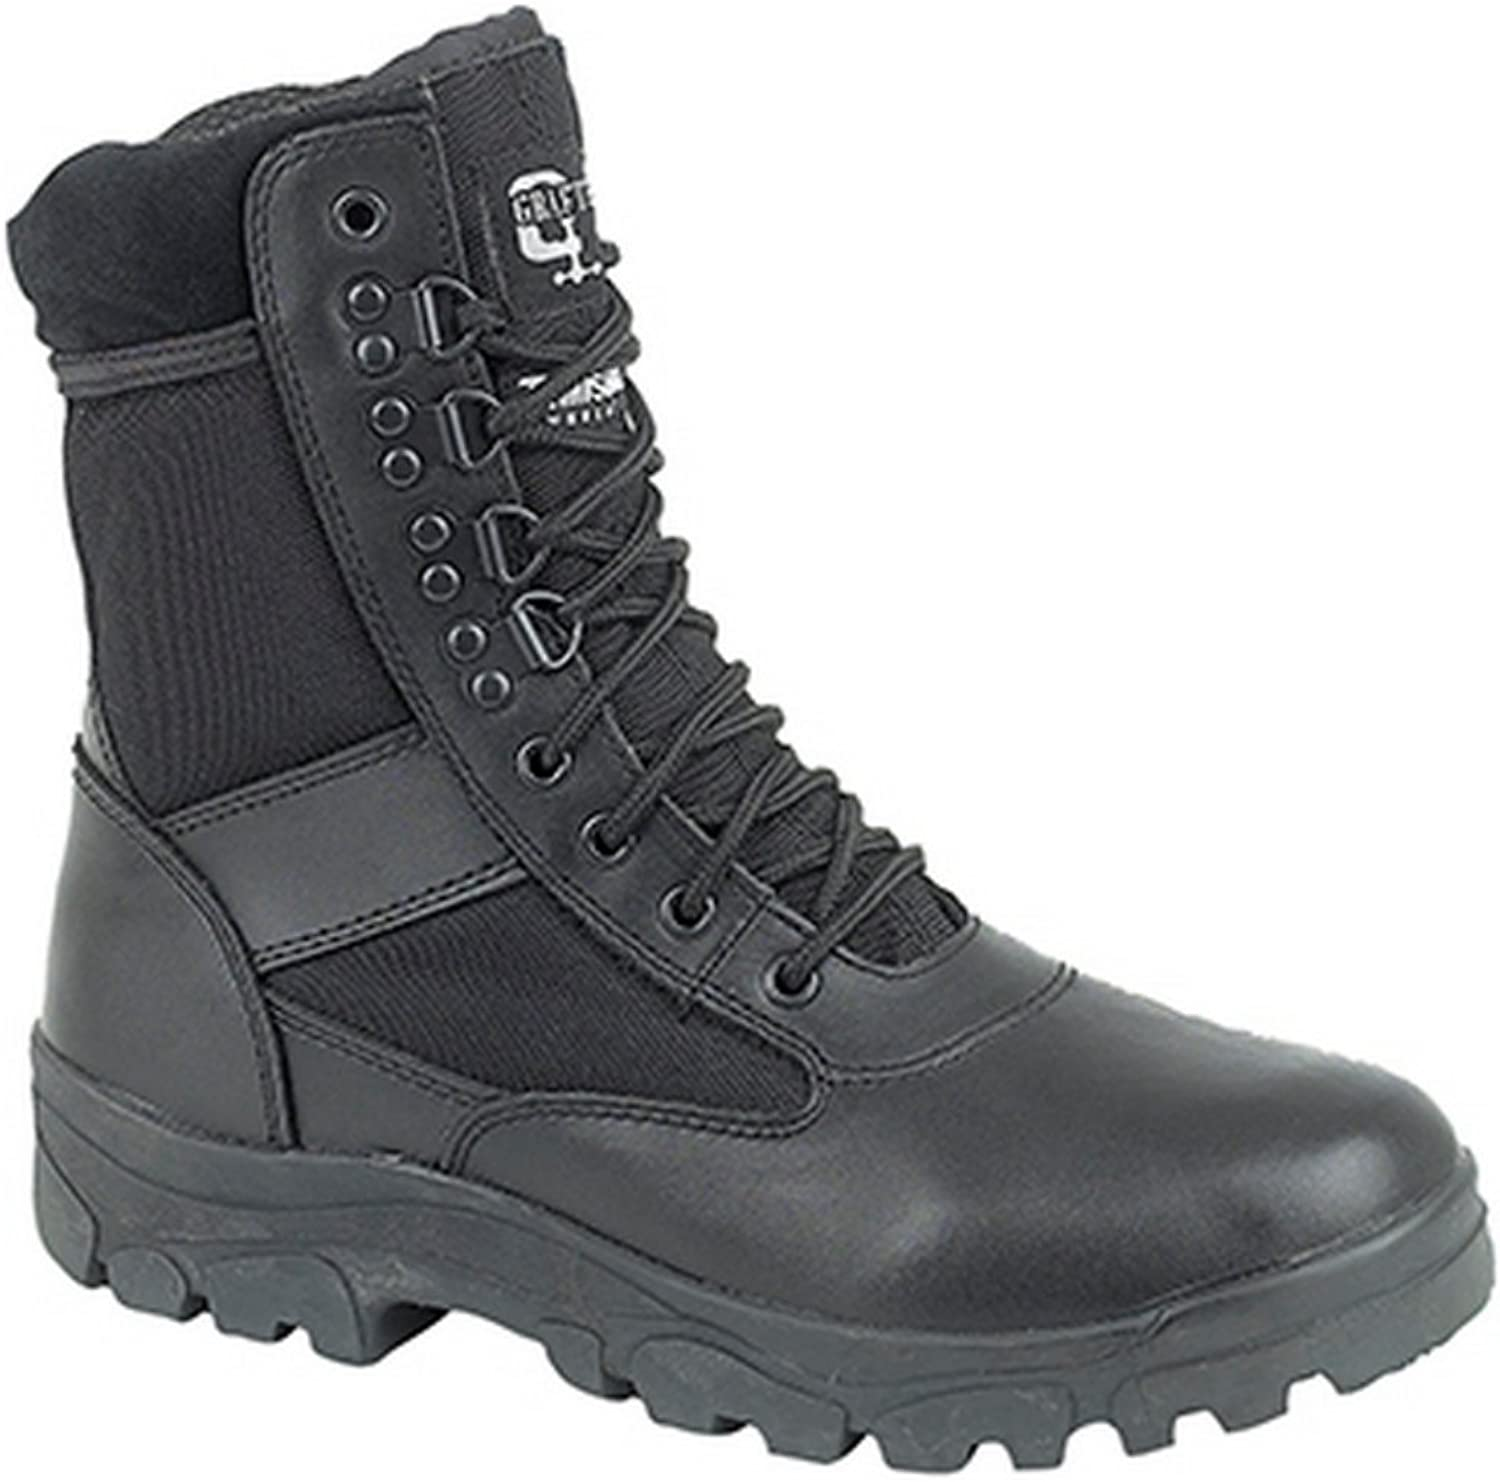 122cfcad28c Grafters G-Force Safety Boot Combat nyfsar6433-New Shoes - shirts ...